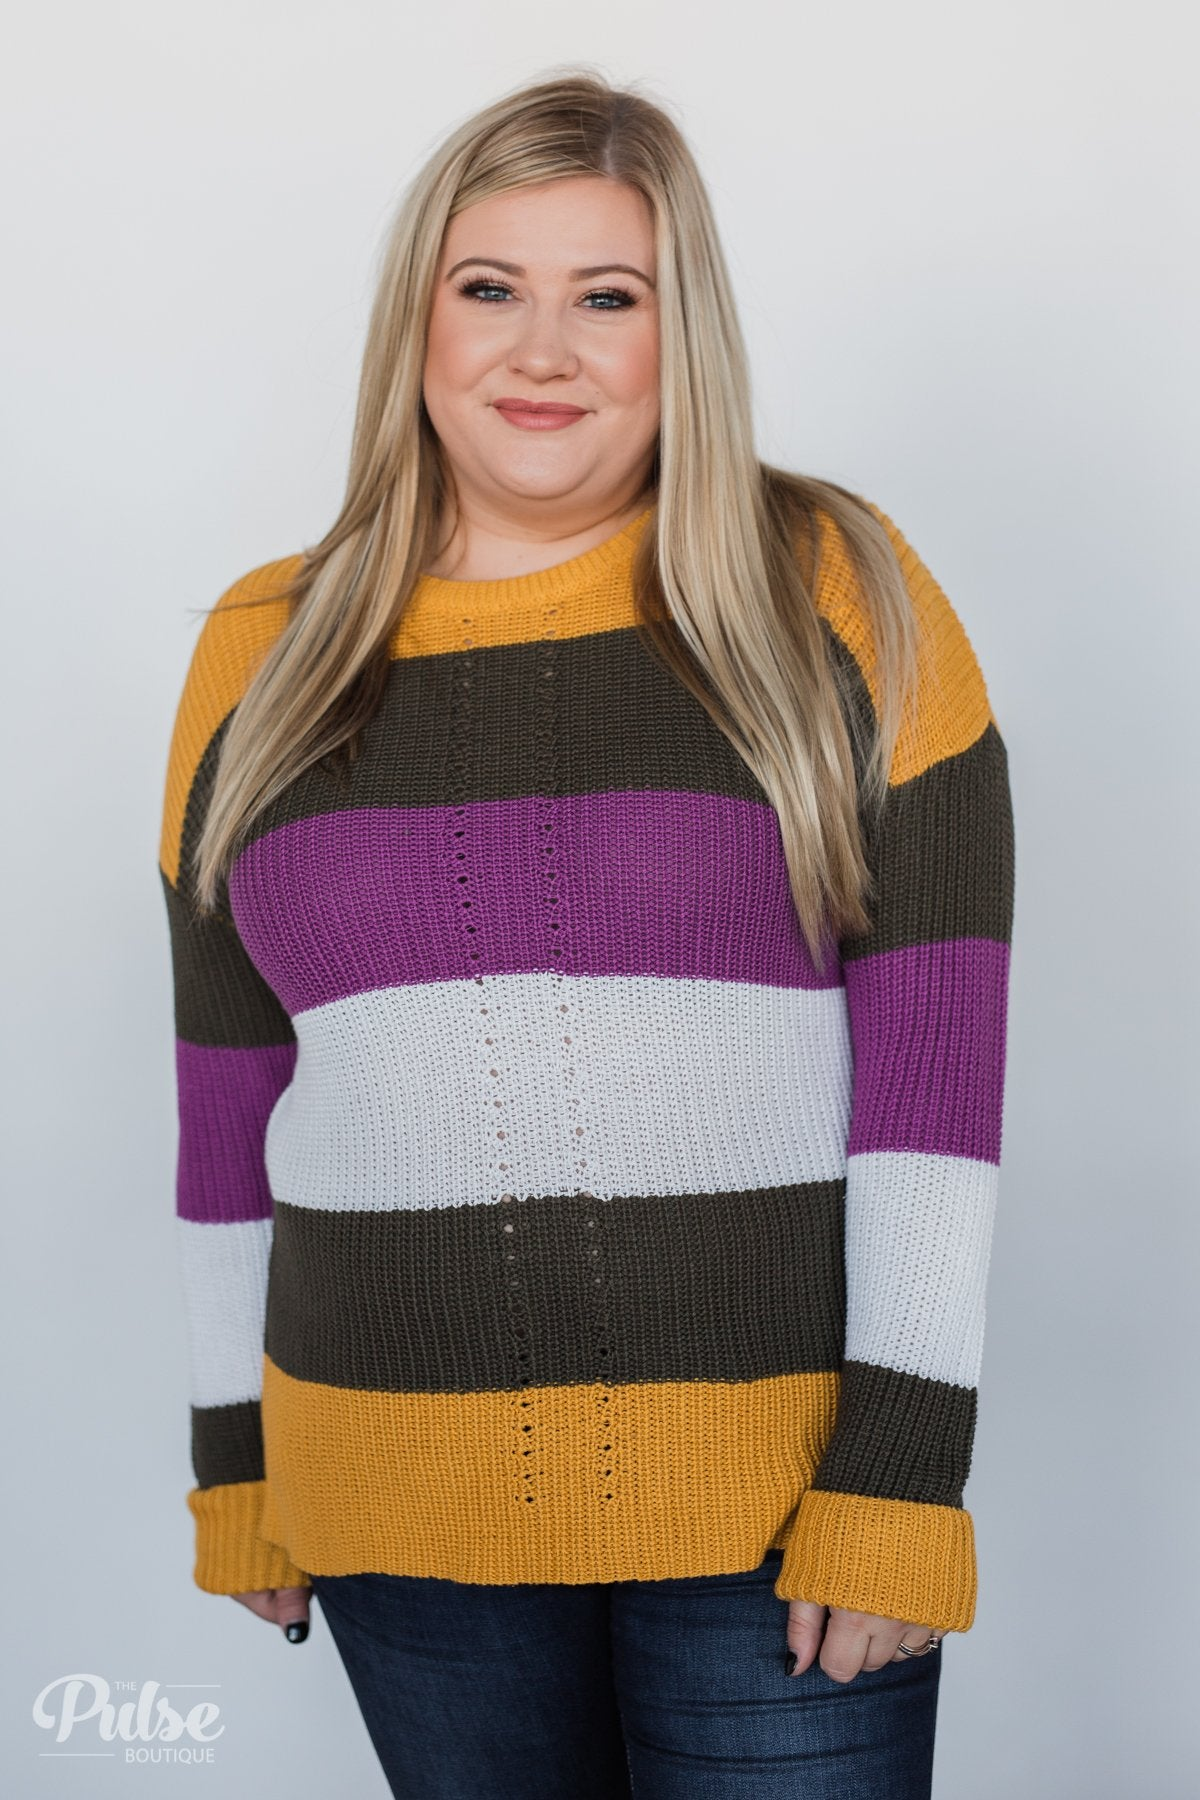 The Way to You Knitted Sweater- Mustard, Olive, & Purple